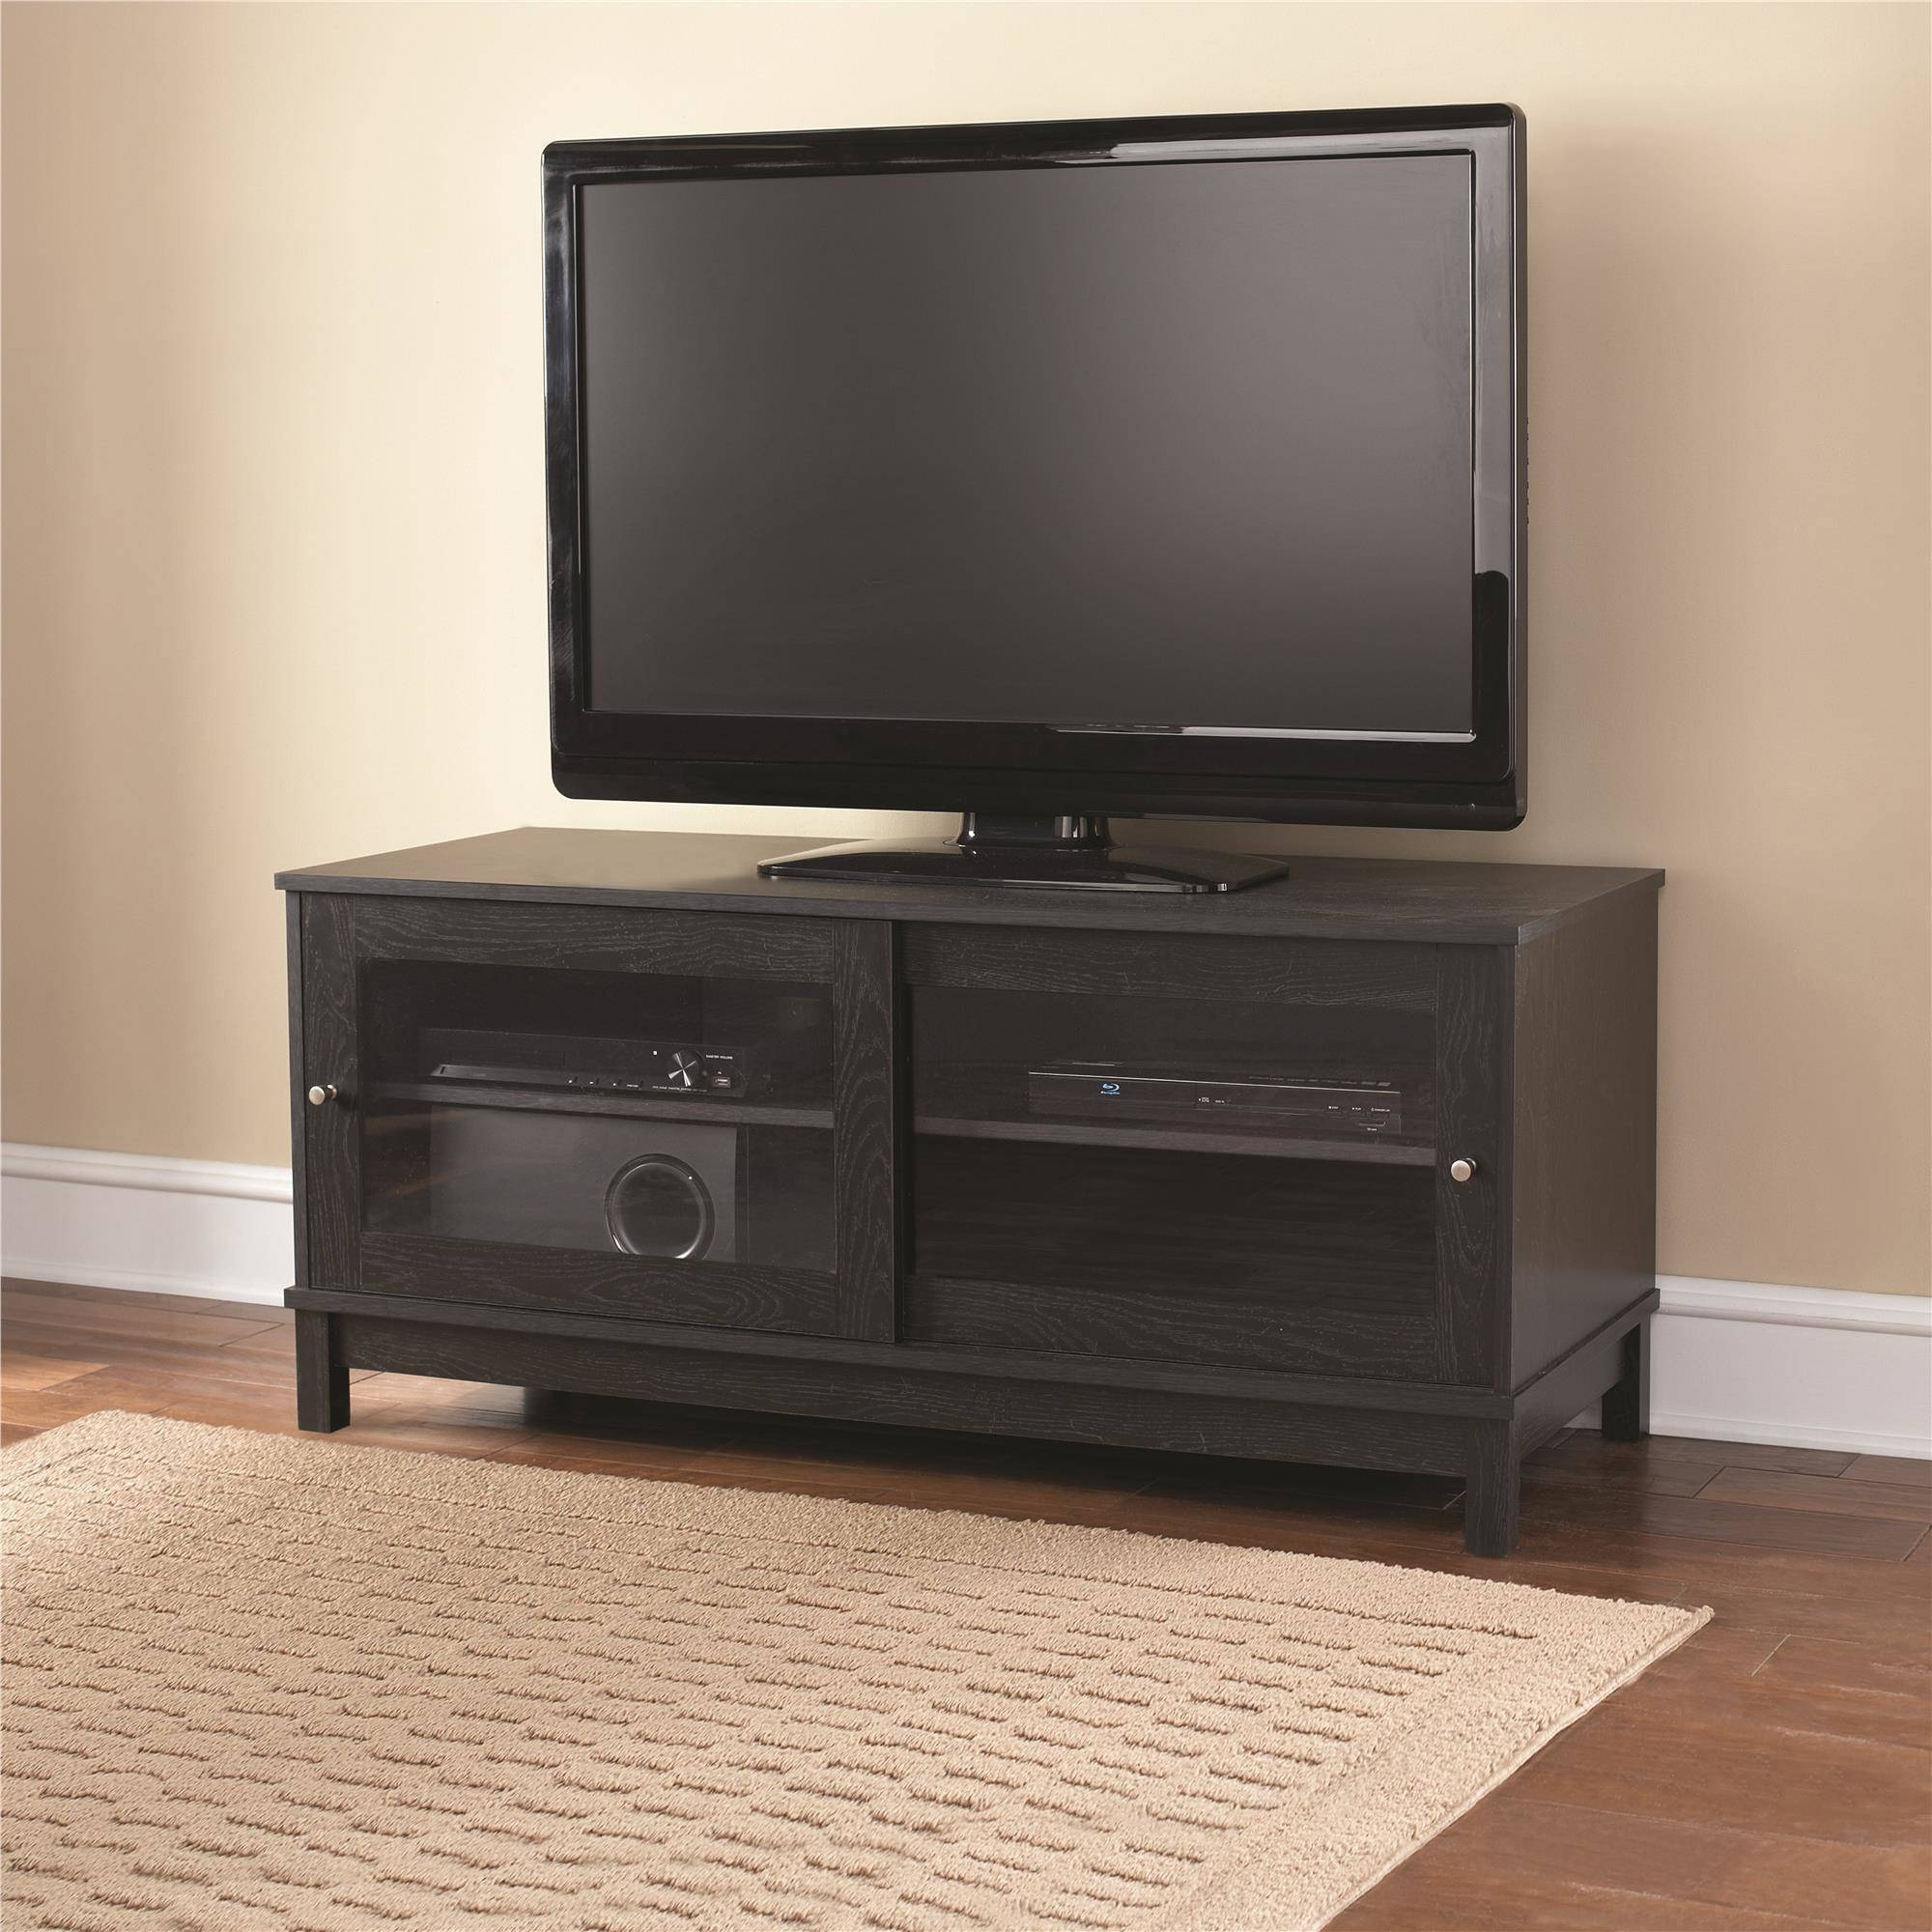 15 Best Ideas Of Wooden Tv Stands For 55 Inch Flat Screen